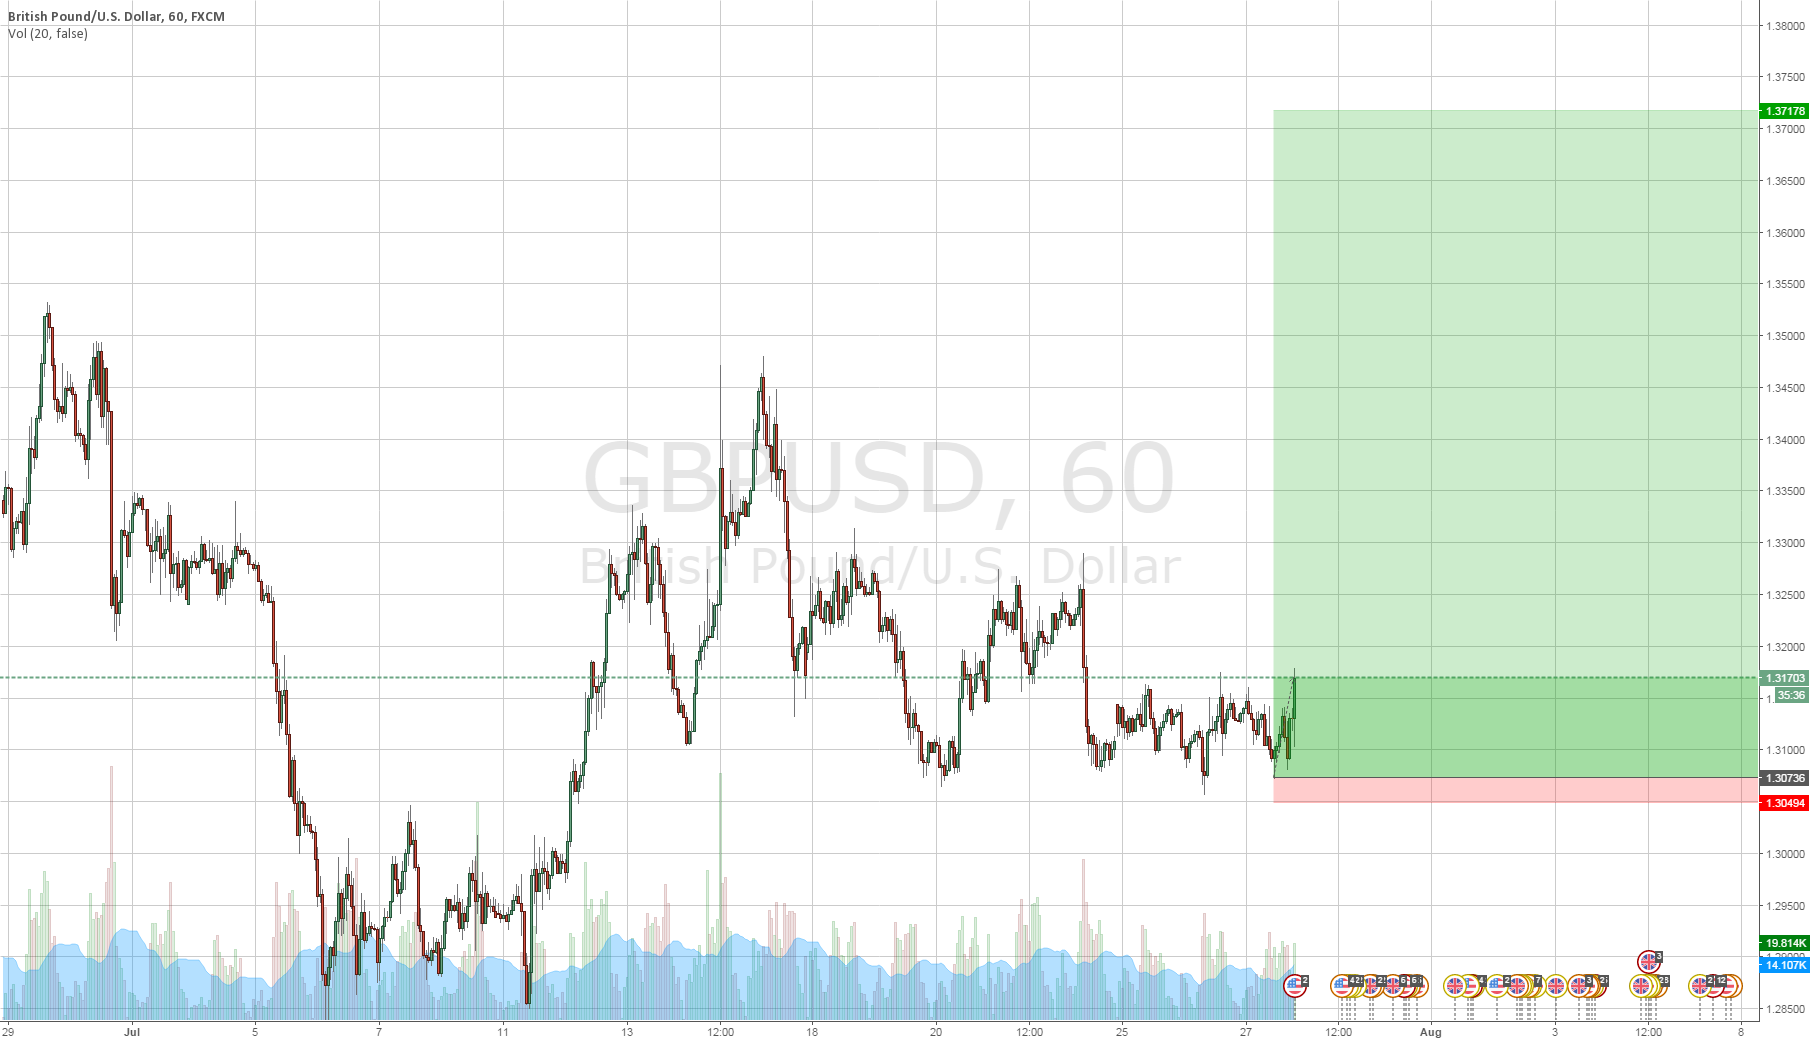 Entered LONG GBPUSD (Great R/R ratio)